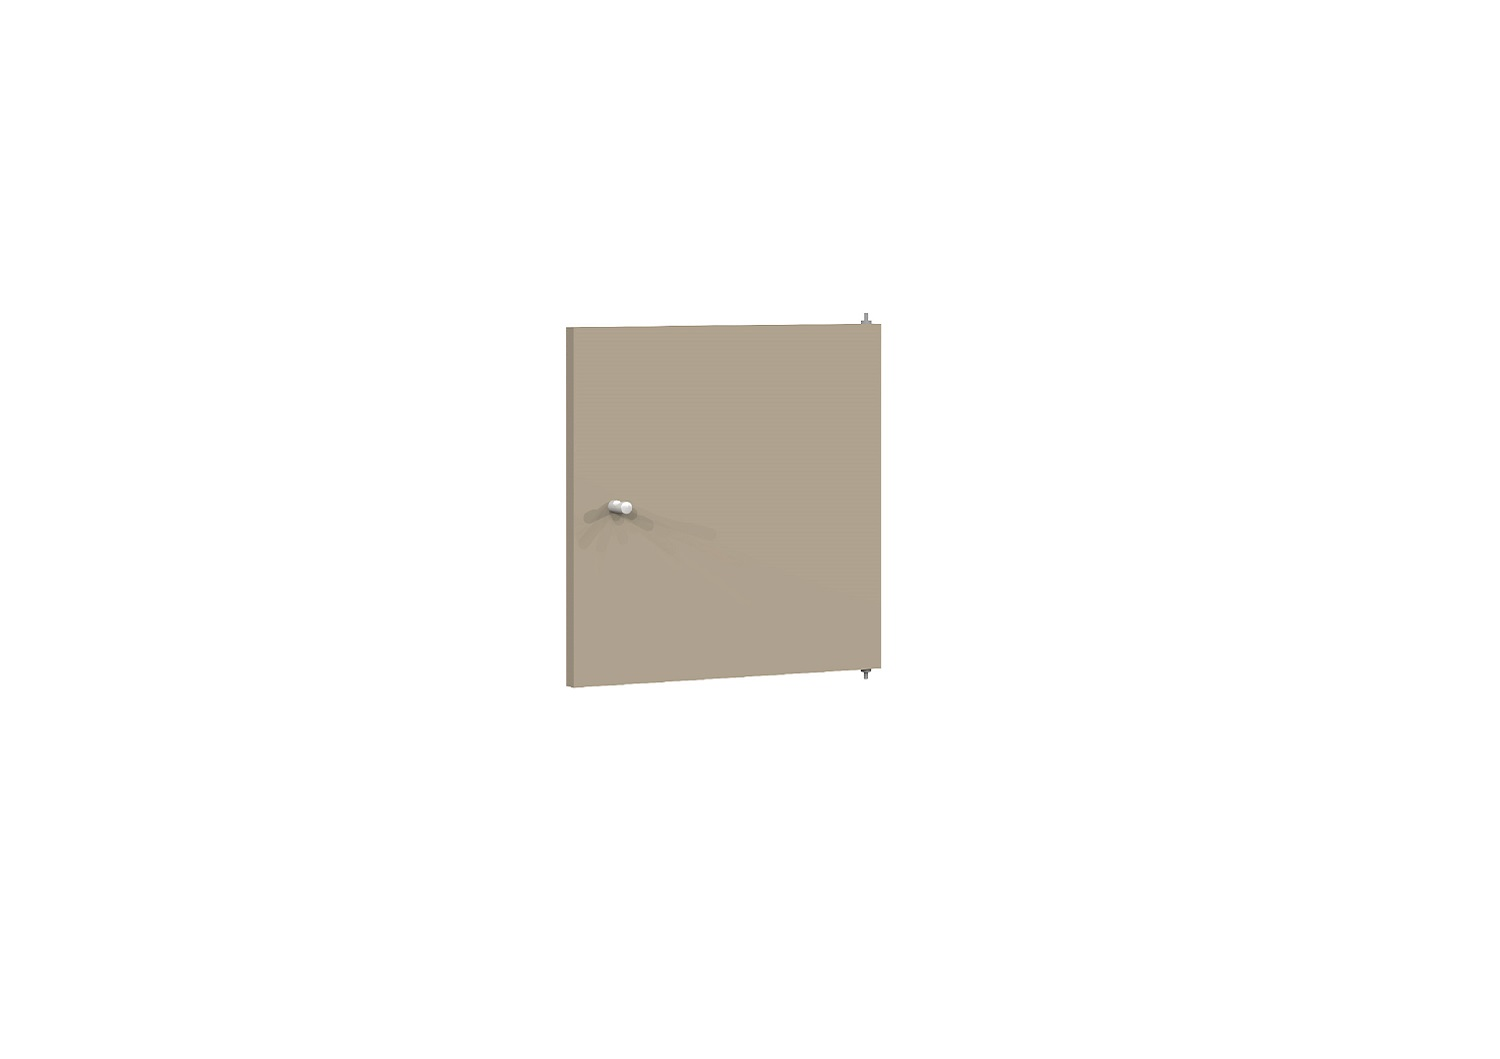 Bilrich Storage Furniture - Multi Kaz Accessory Door Taupe